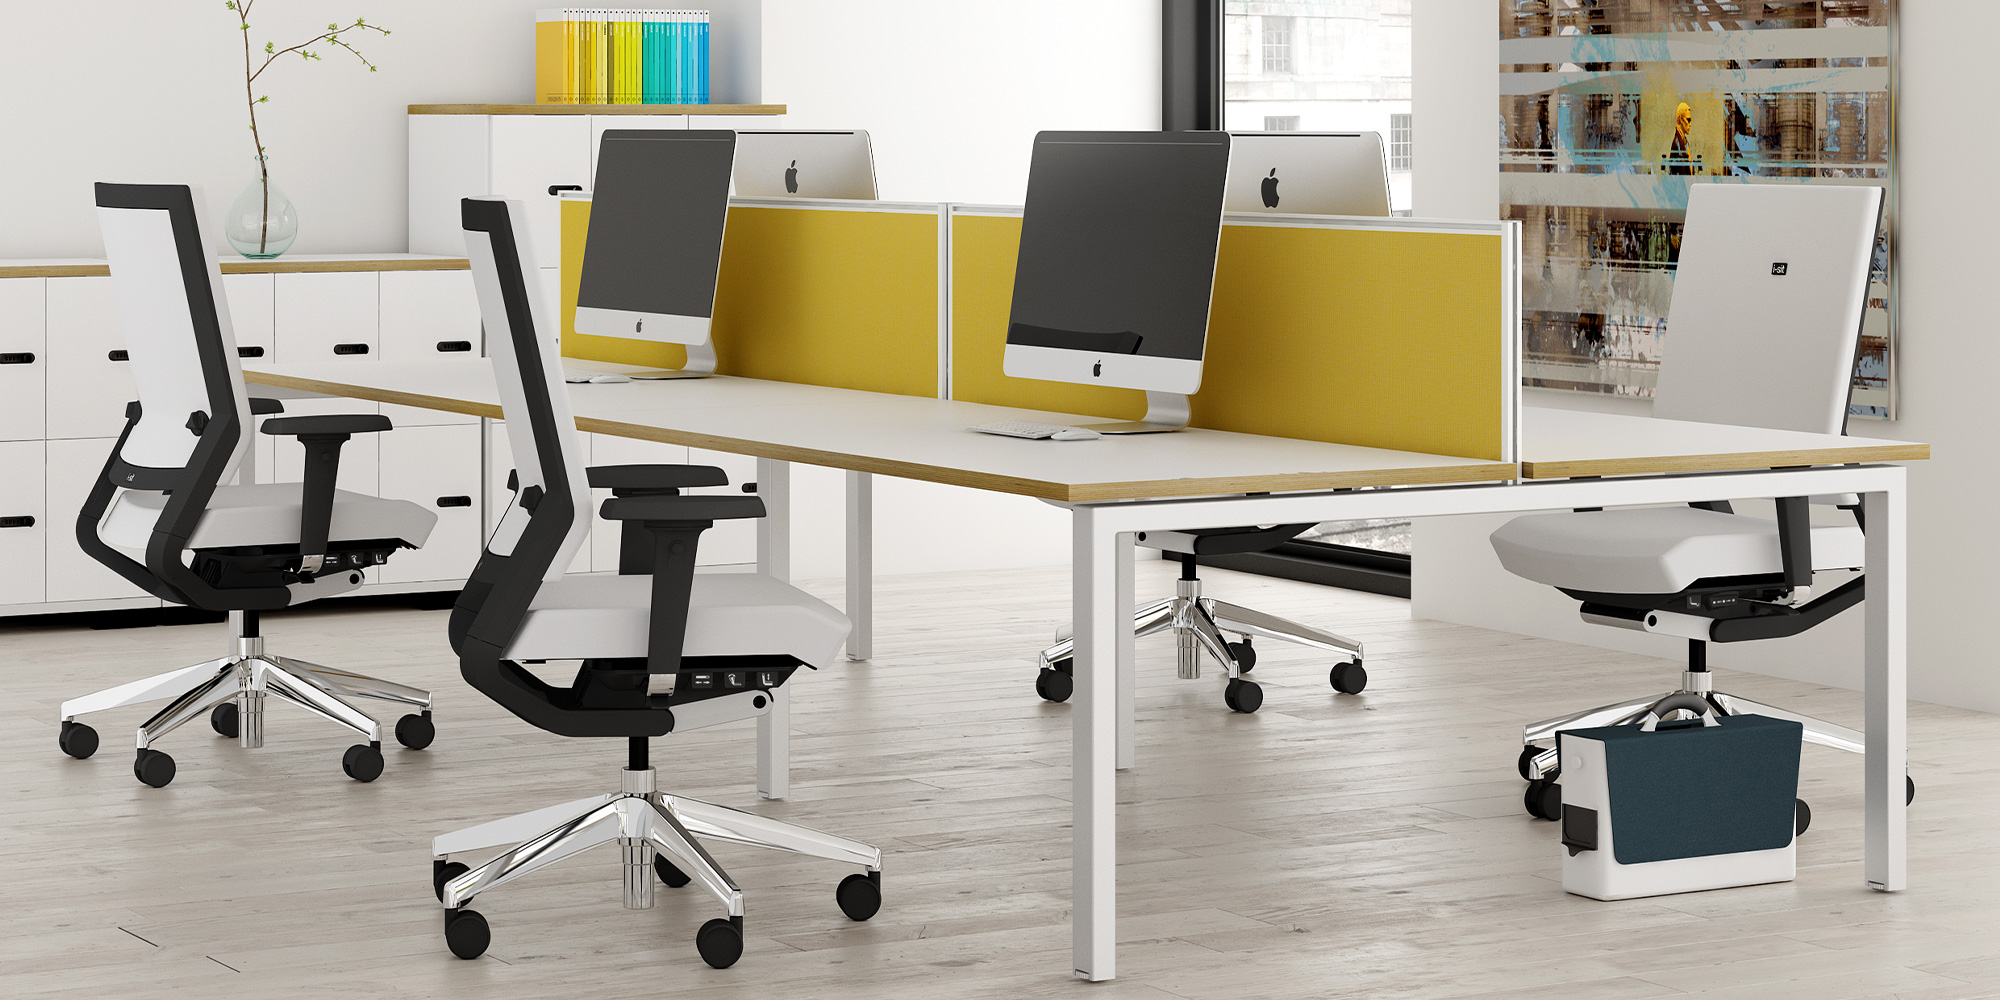 i-sit Task and Meeting Seating Roomset